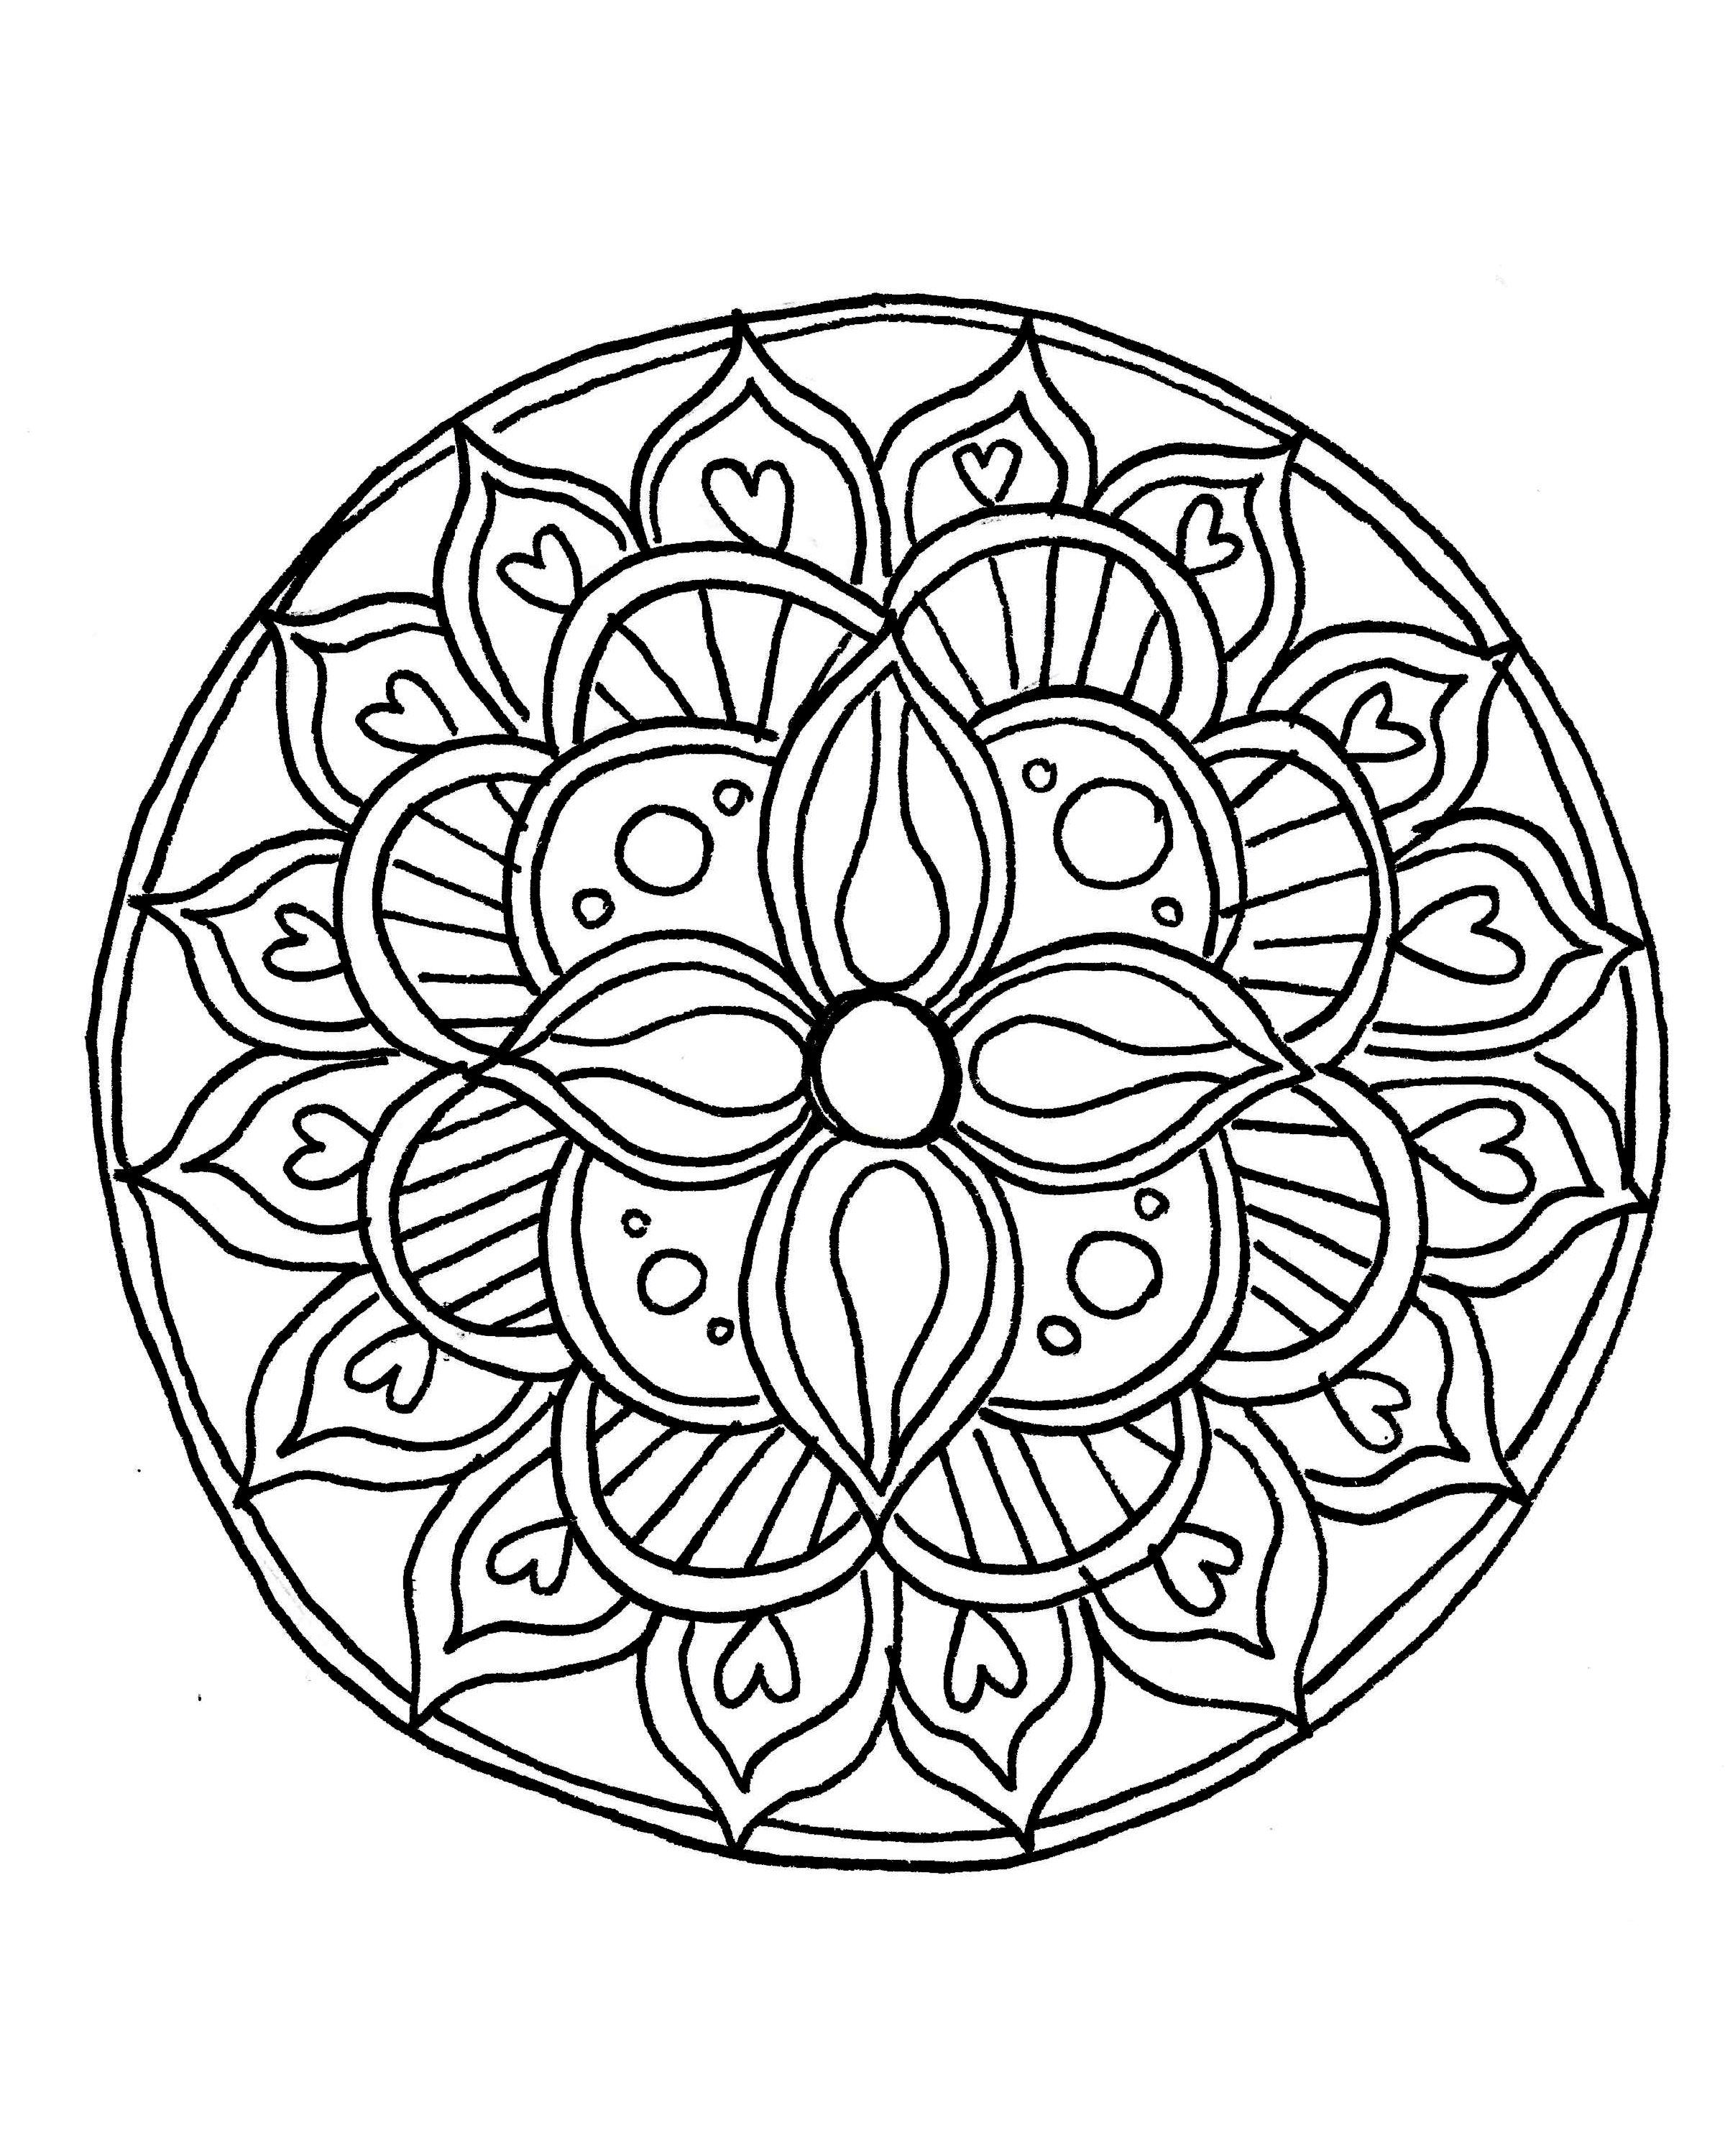 How To Draw A Mandala (with Free Coloring Pages!)   Drawings